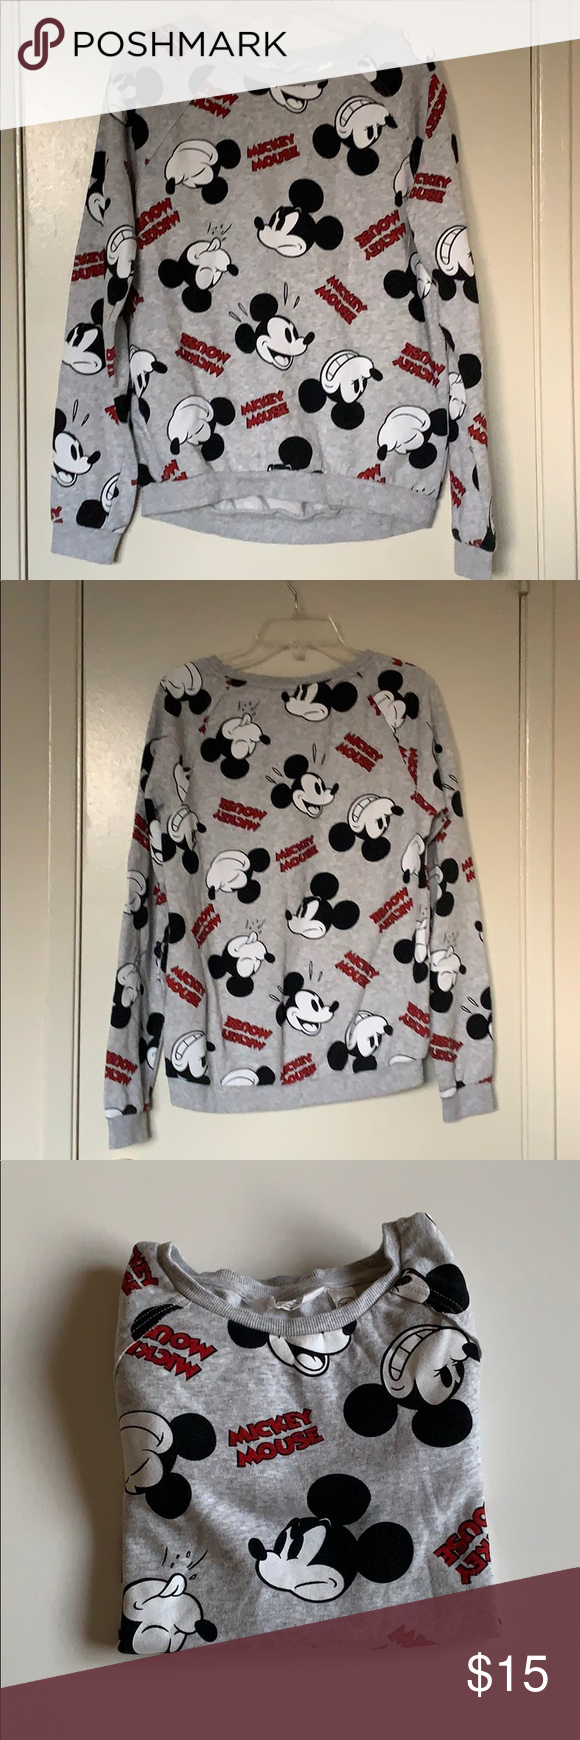 H M Disney Mickey Mouse Sweater Sweaters Clothes Design Disney Mickey Mouse [ 1740 x 580 Pixel ]